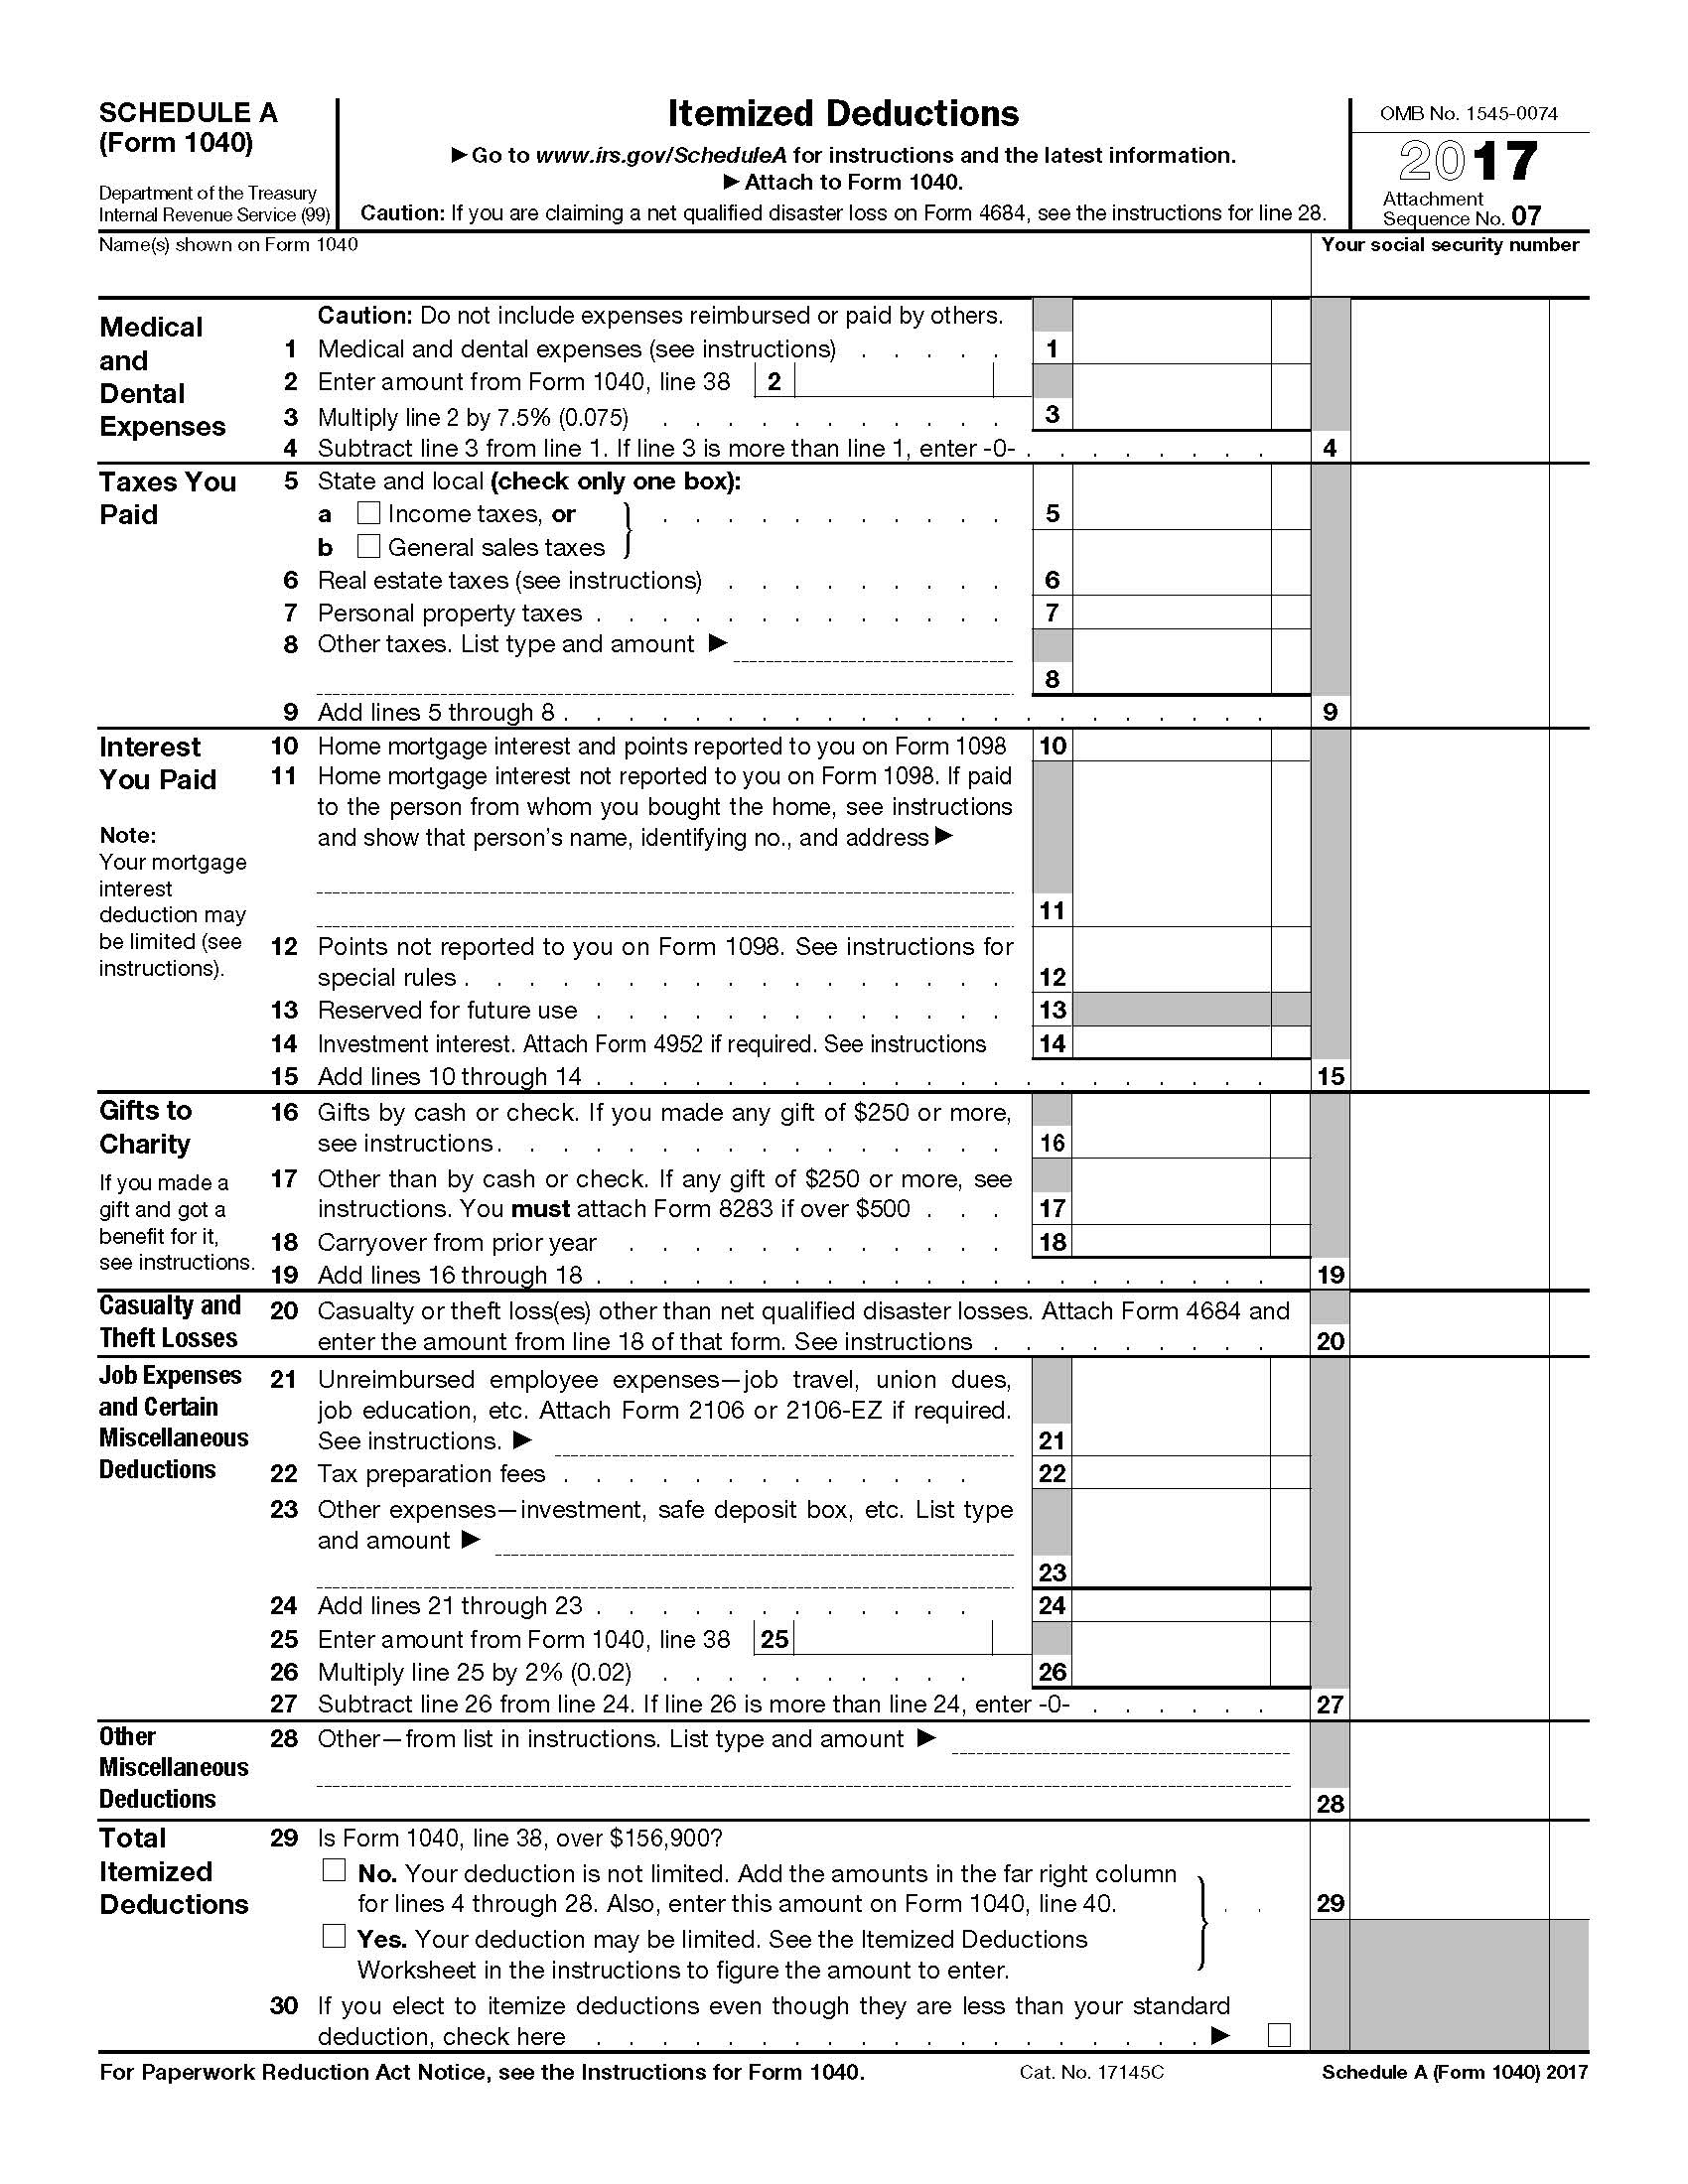 Irs Tax Forms Schedule A Itemized Deductions